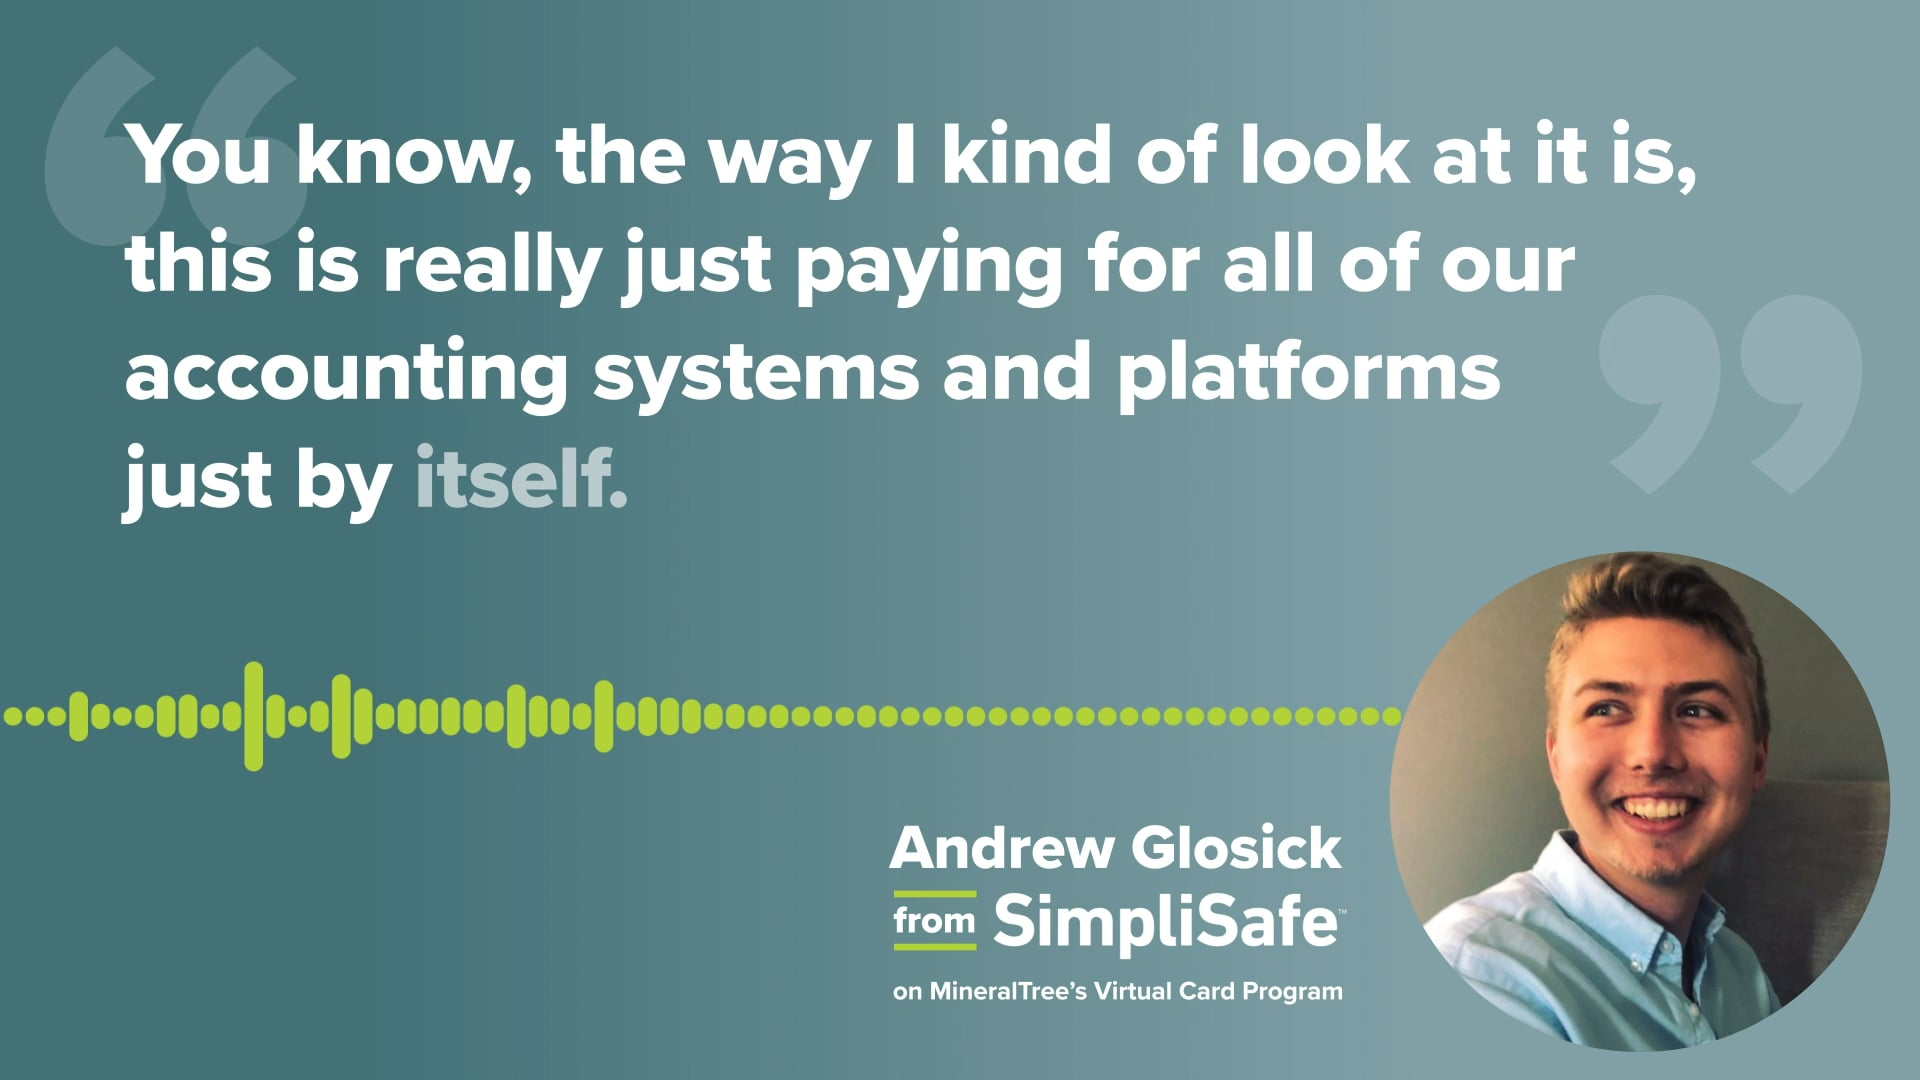 Andrew Glosick from SimpliSafe on MineralTree's Virtual Card Program